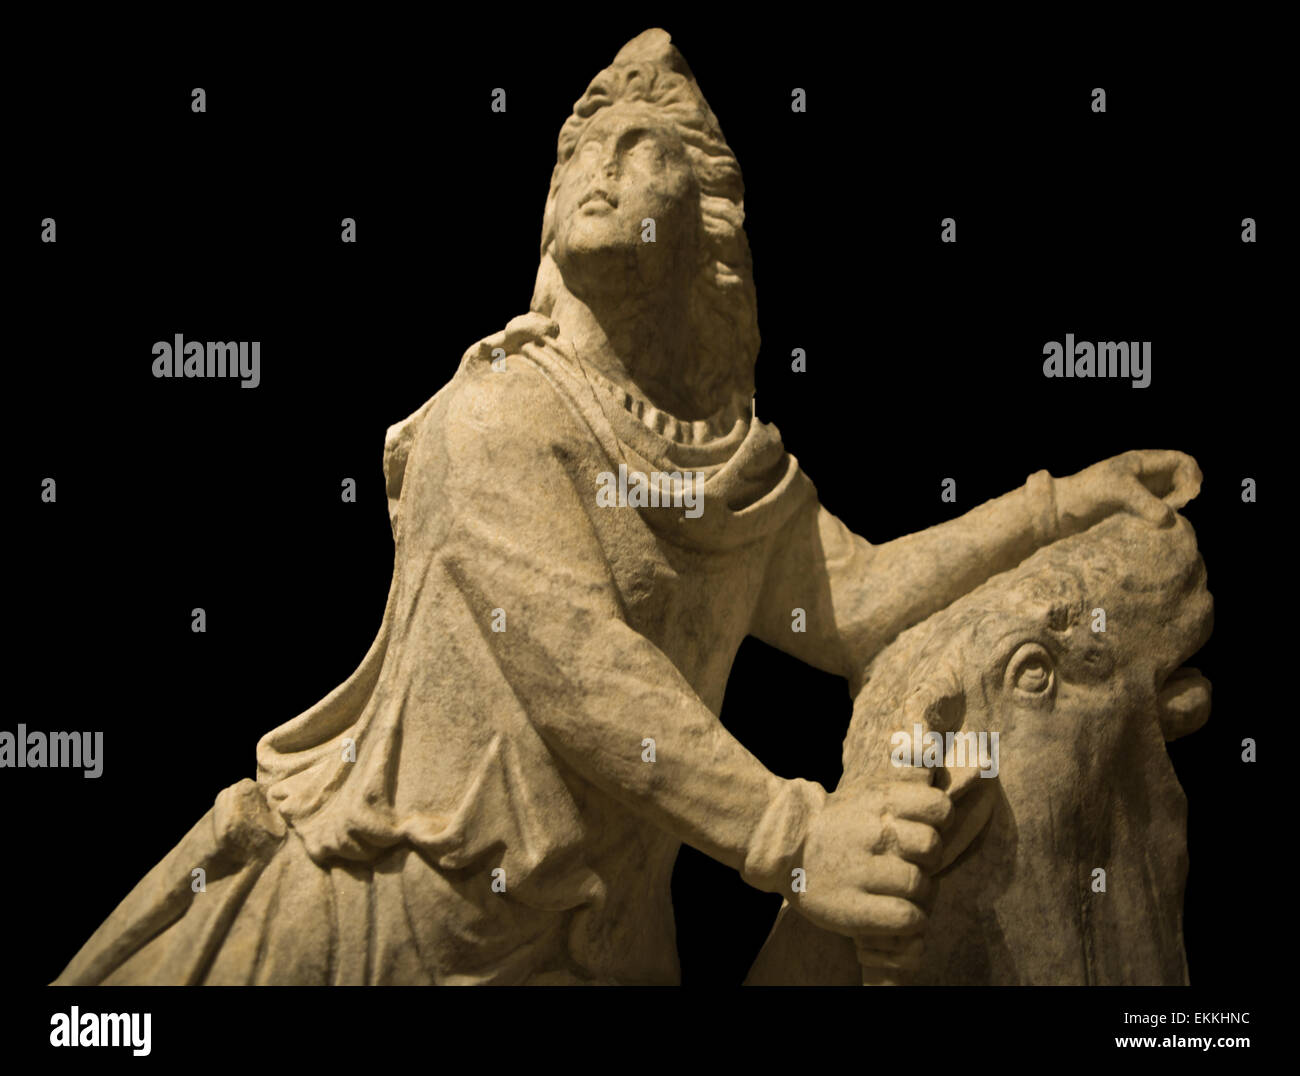 Marble sculpture of roman mythological deity Mithras - Stock Image